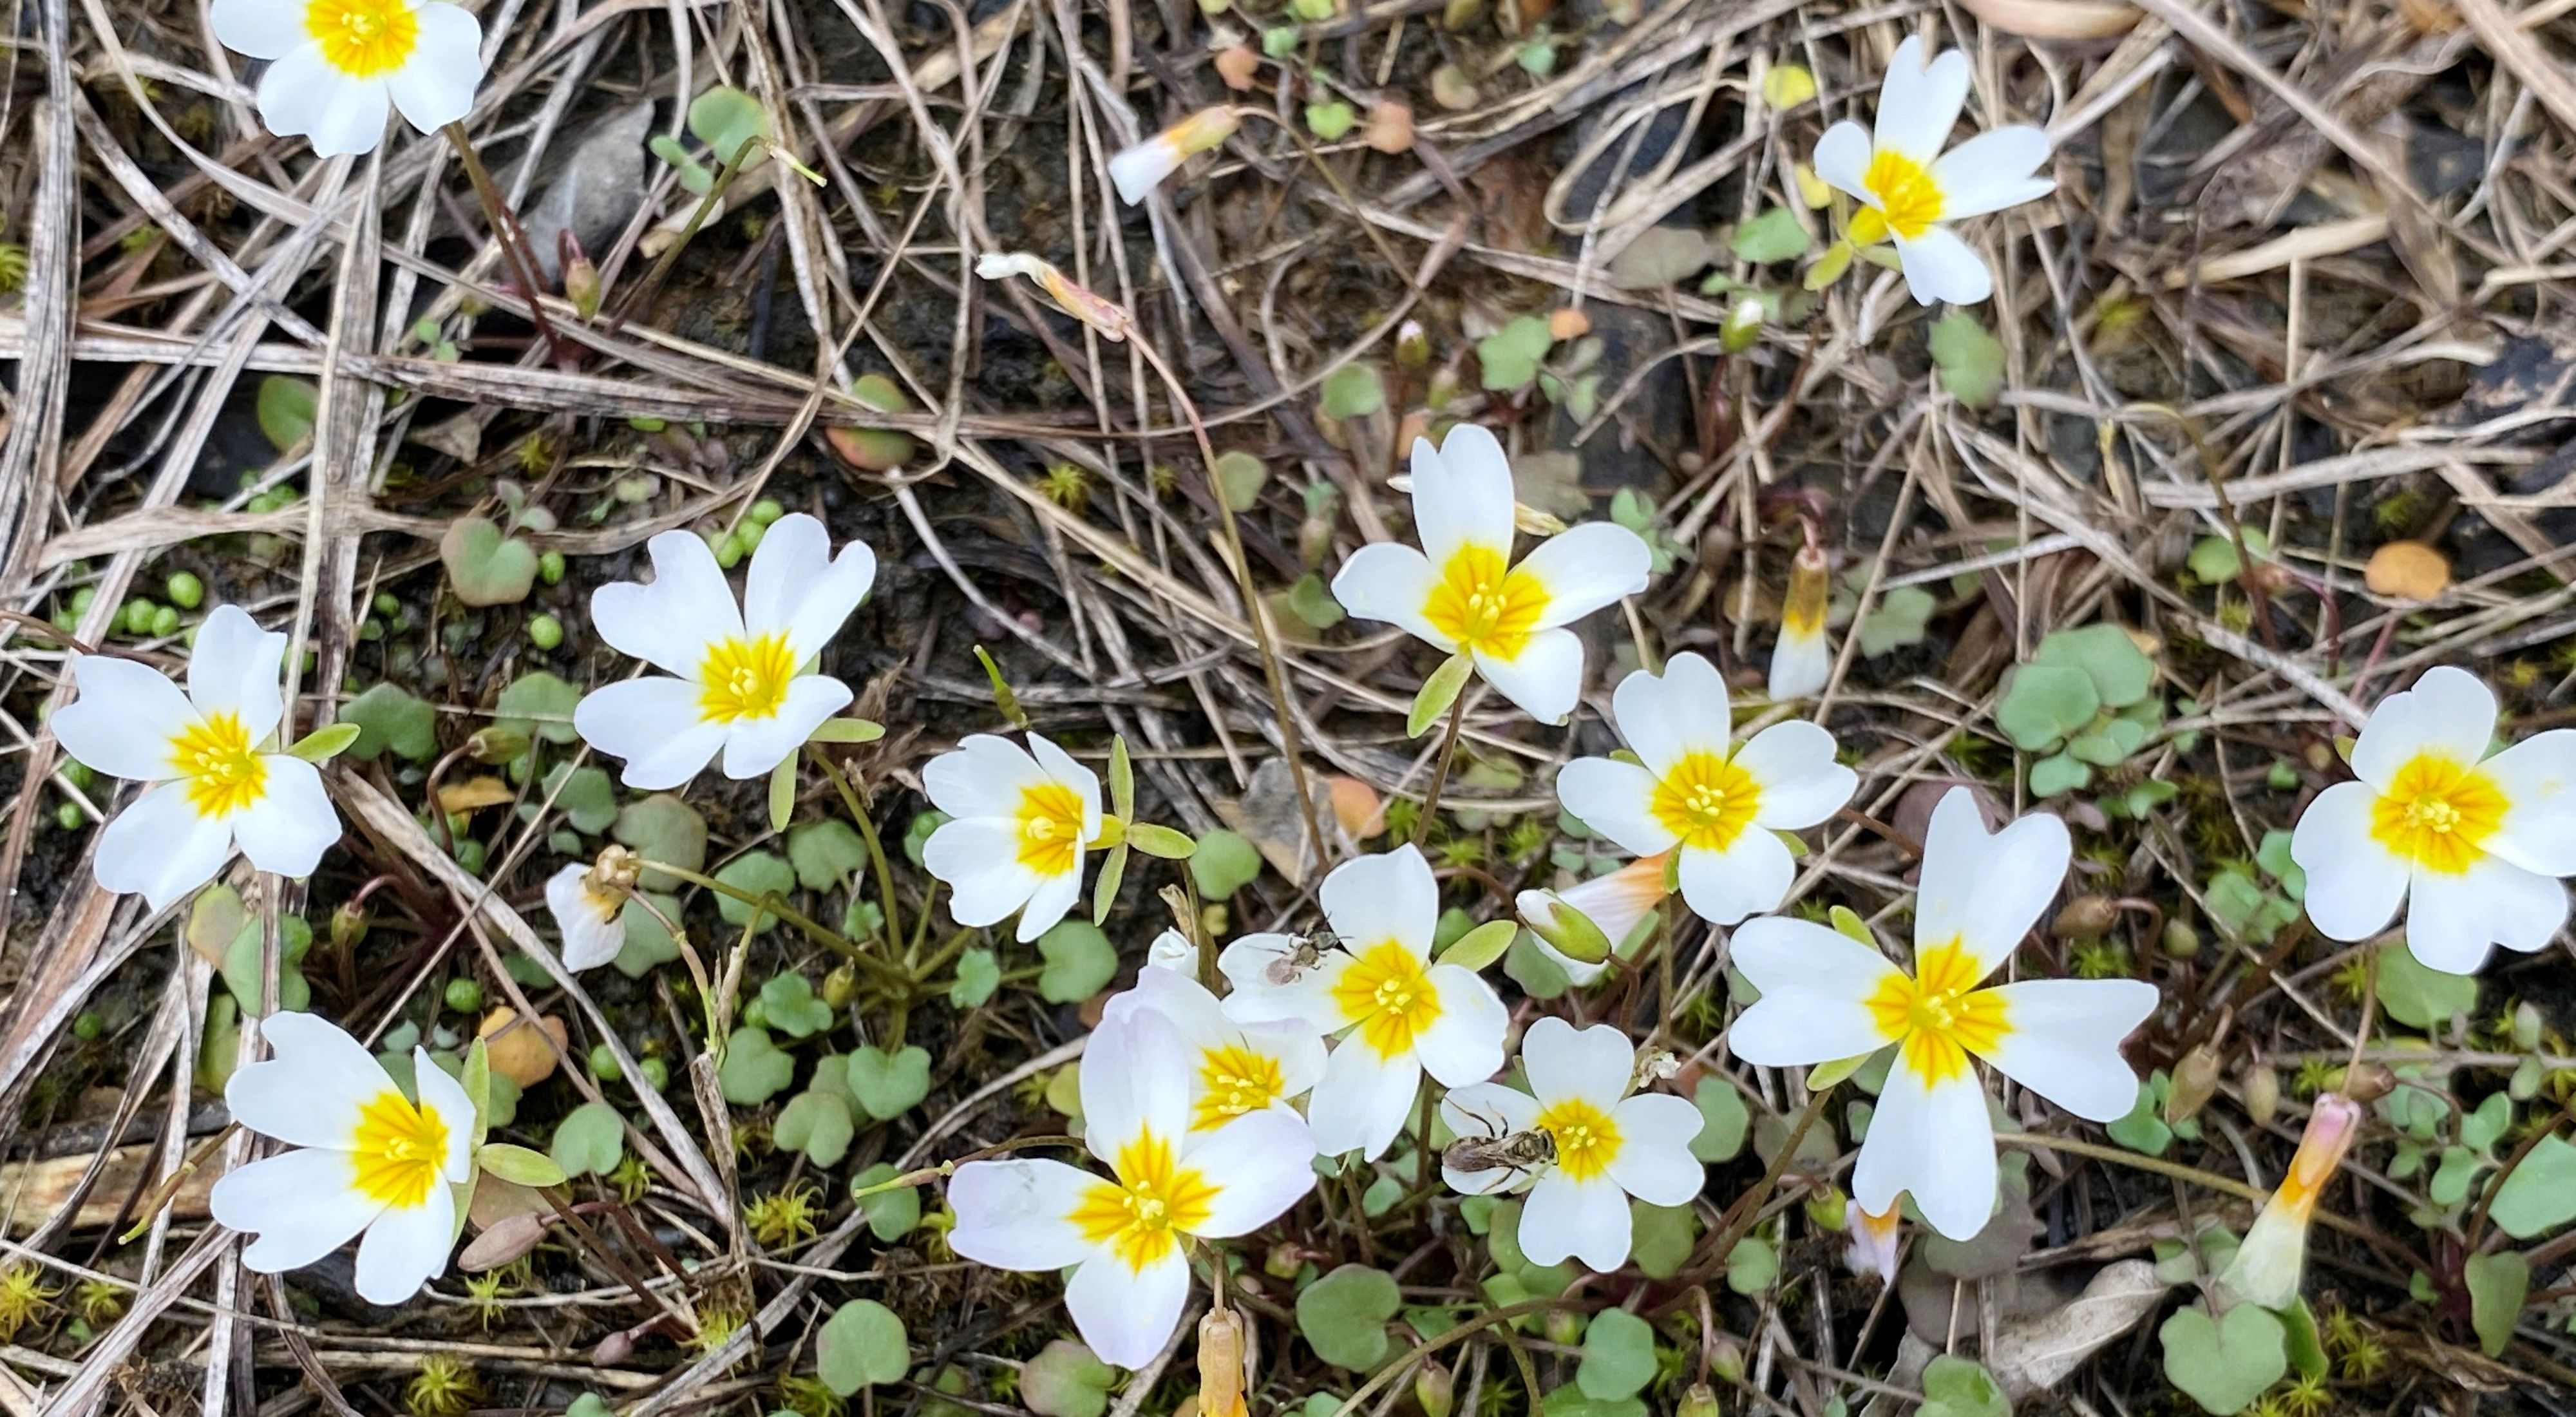 Small white flowers emerge from dry grass and moss in springtime.